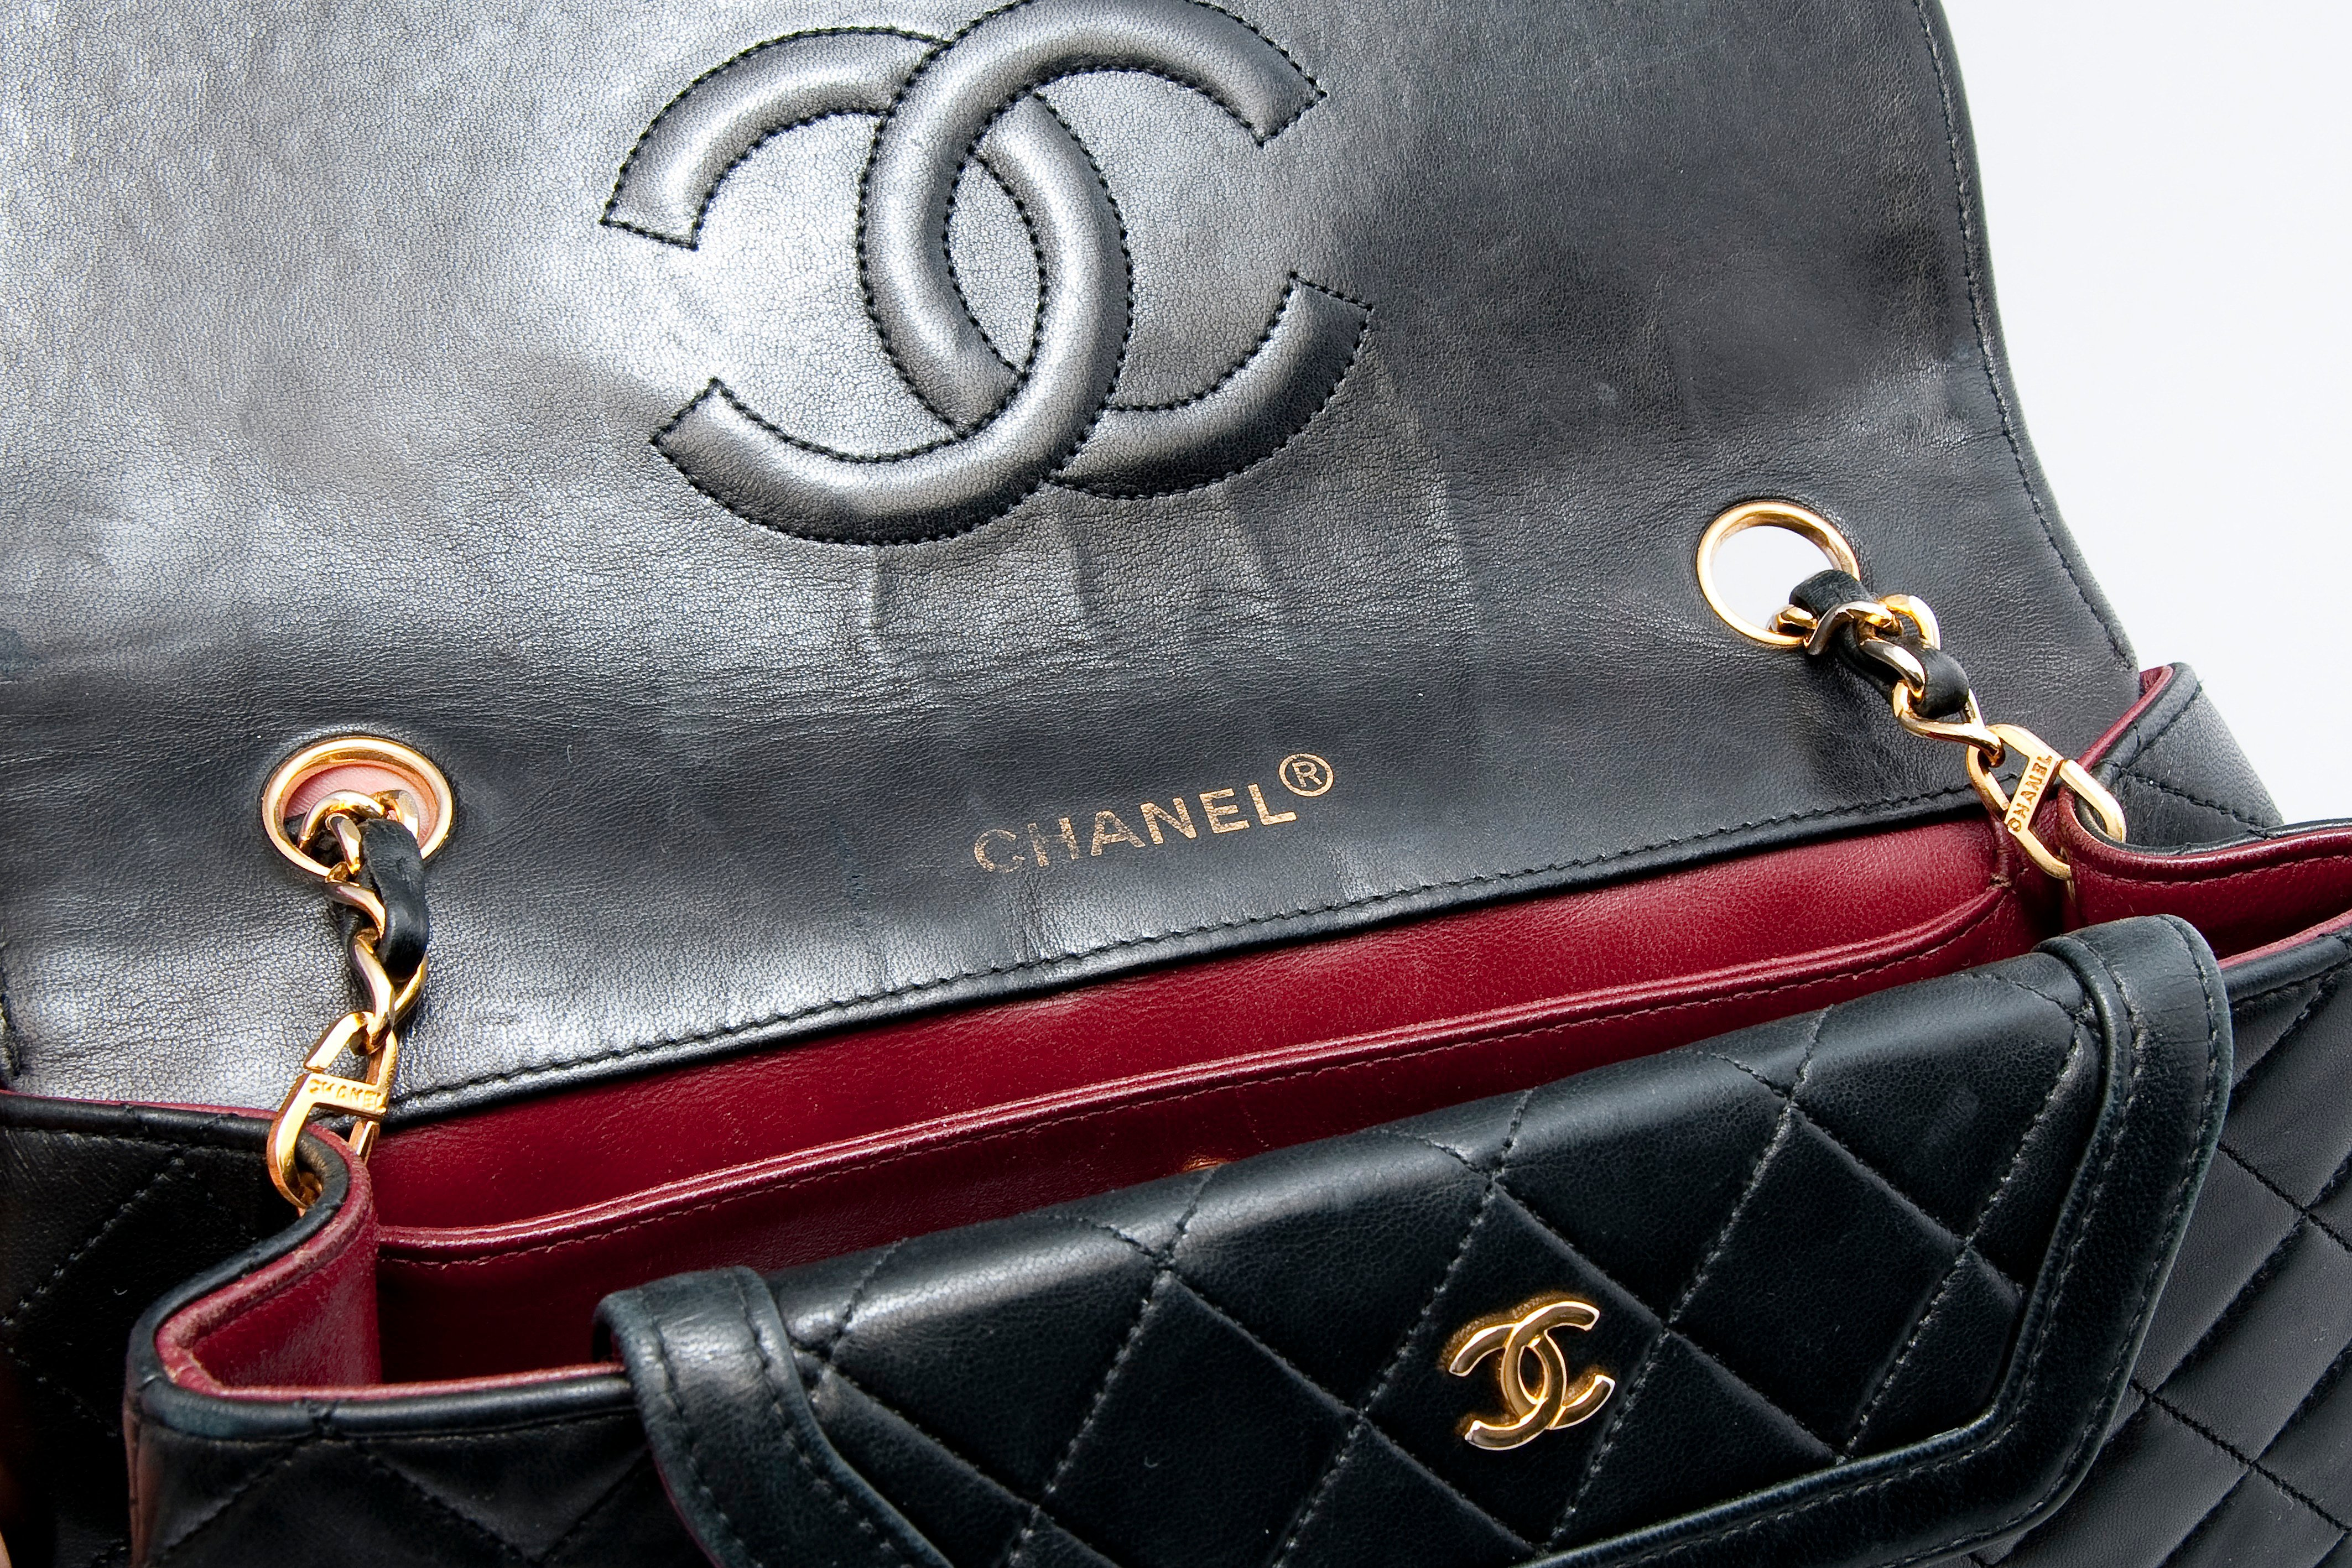 How to Tell If Chanel Bags Are Real or Fake